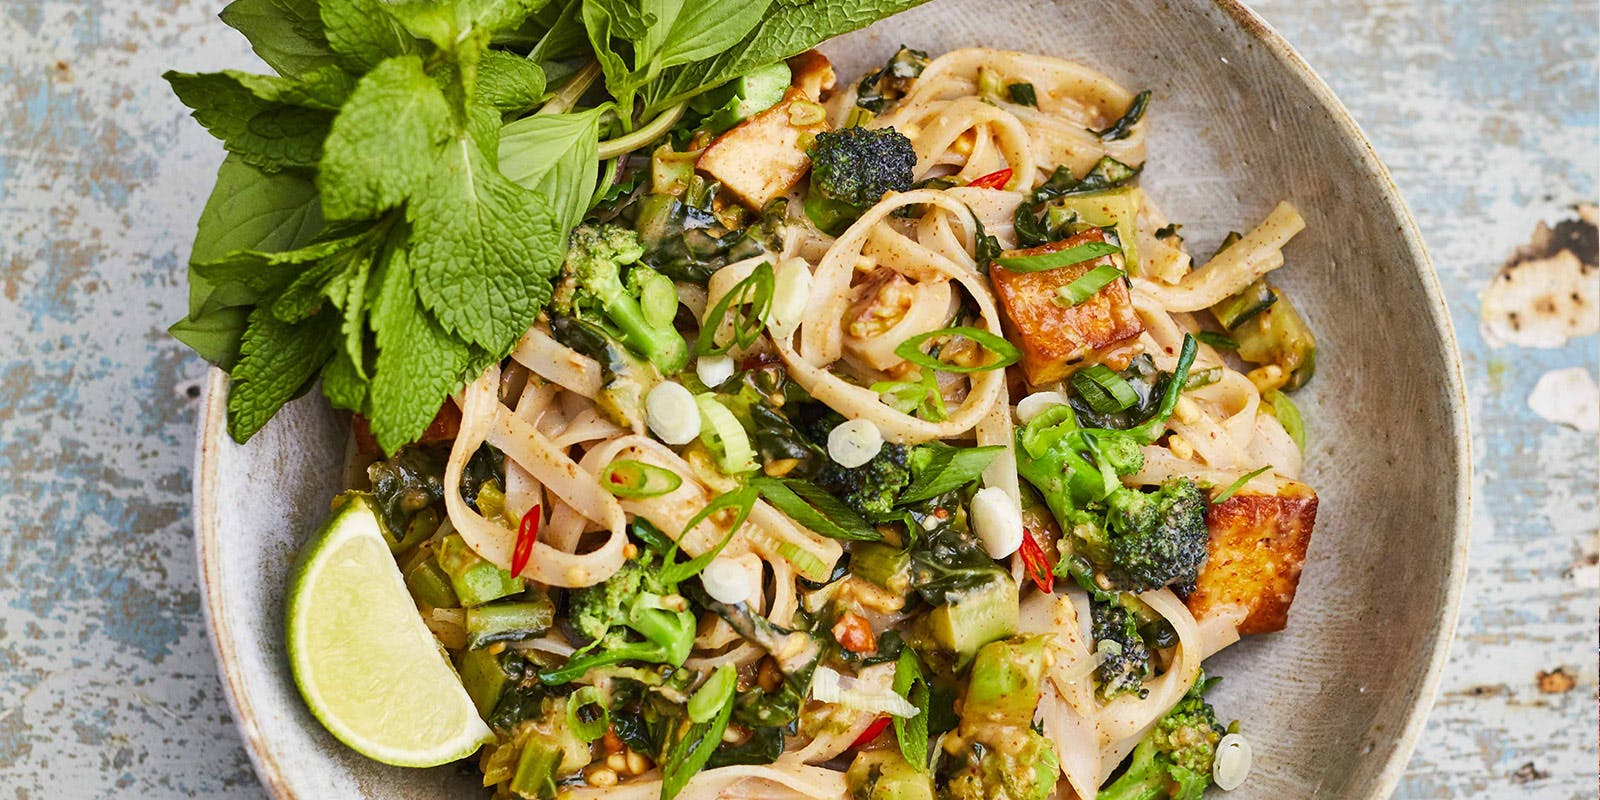 Peanut butter and purple sprouting broccoli pad thai